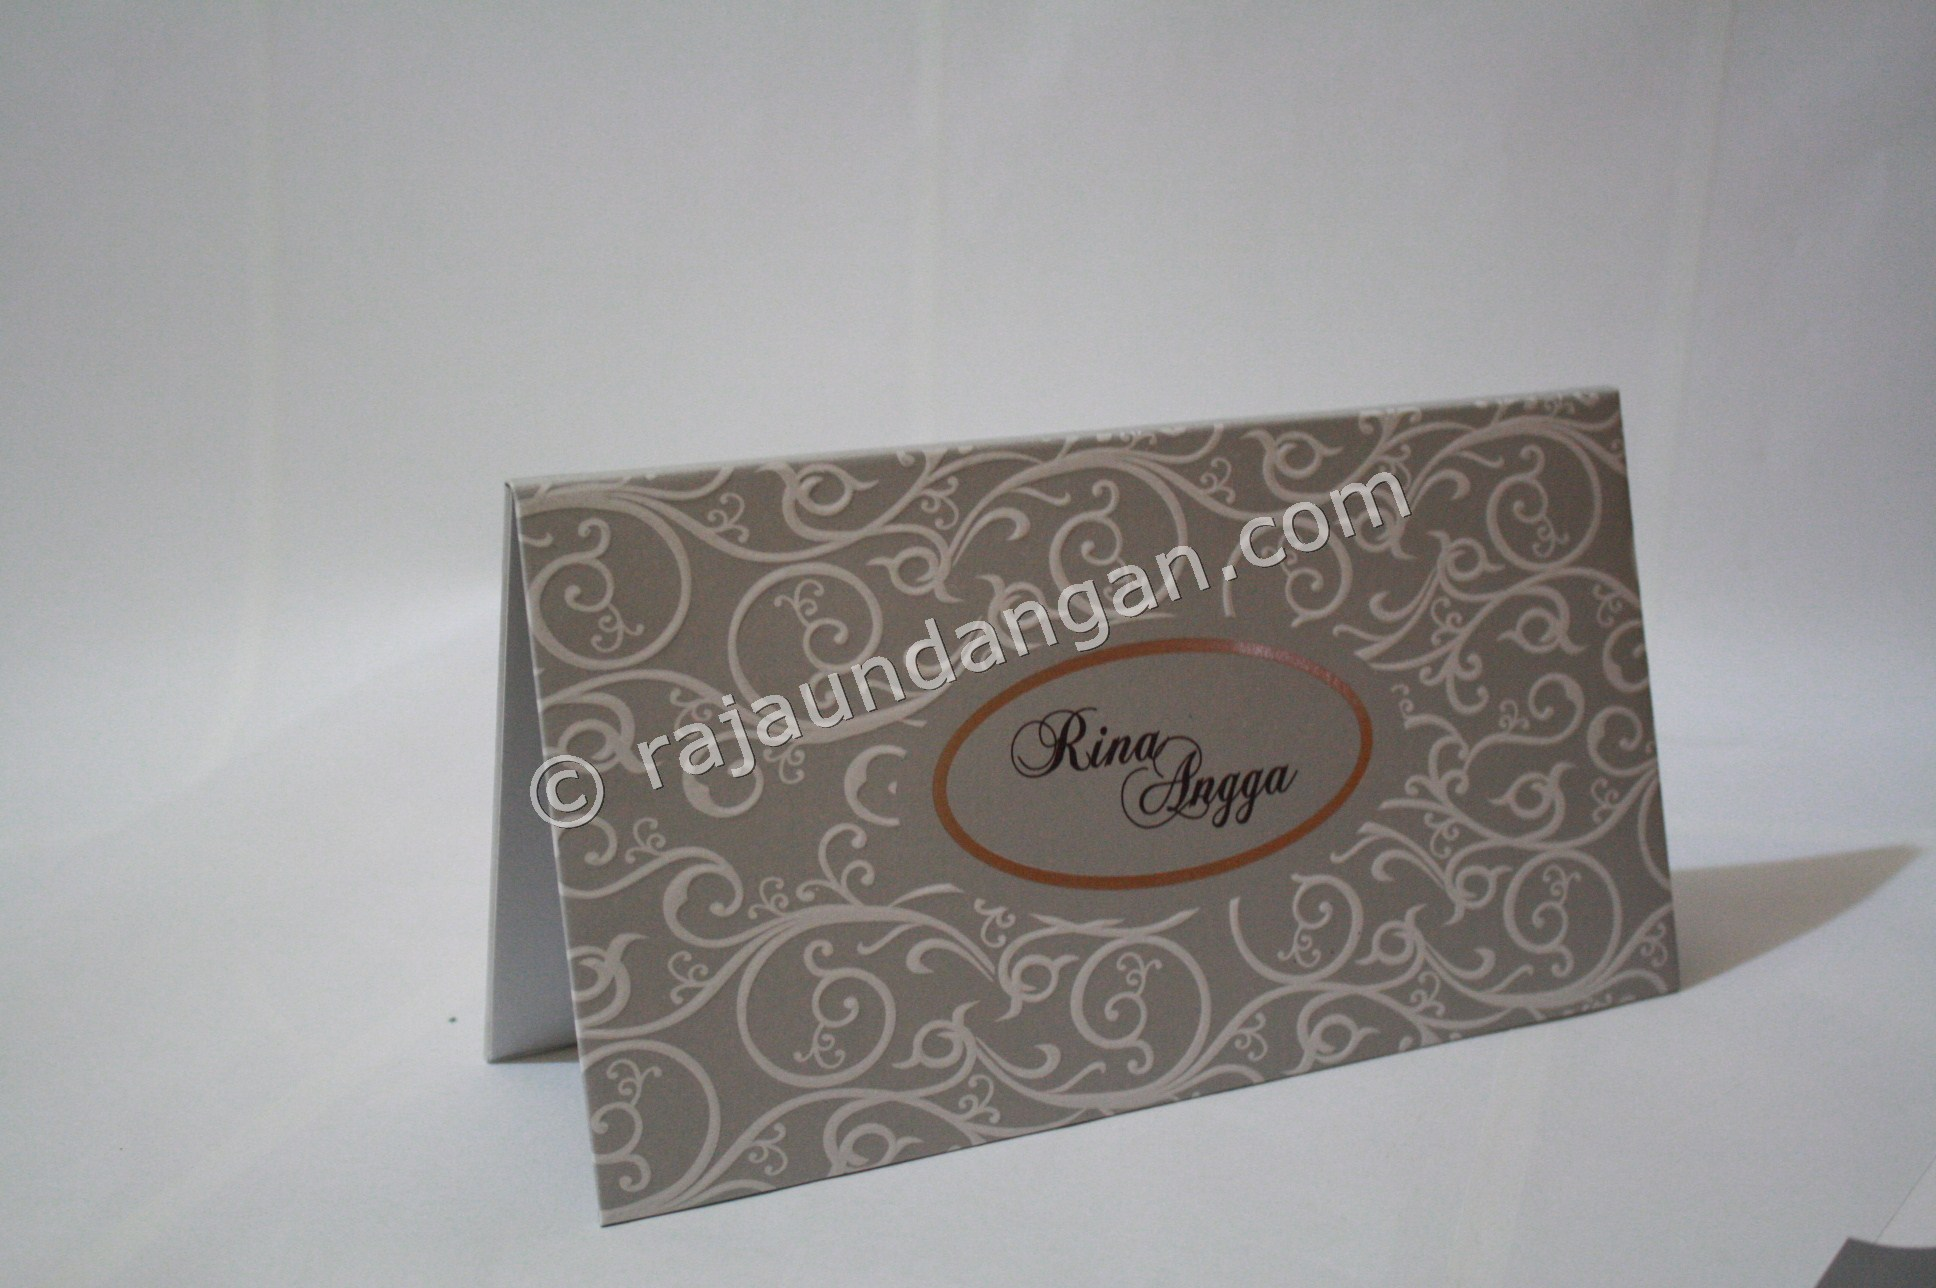 Contoh Kartu Undangan Pernikahan Hardcover ED 29 4 - Membuat Wedding Invitations Eksklusif di Jeruk